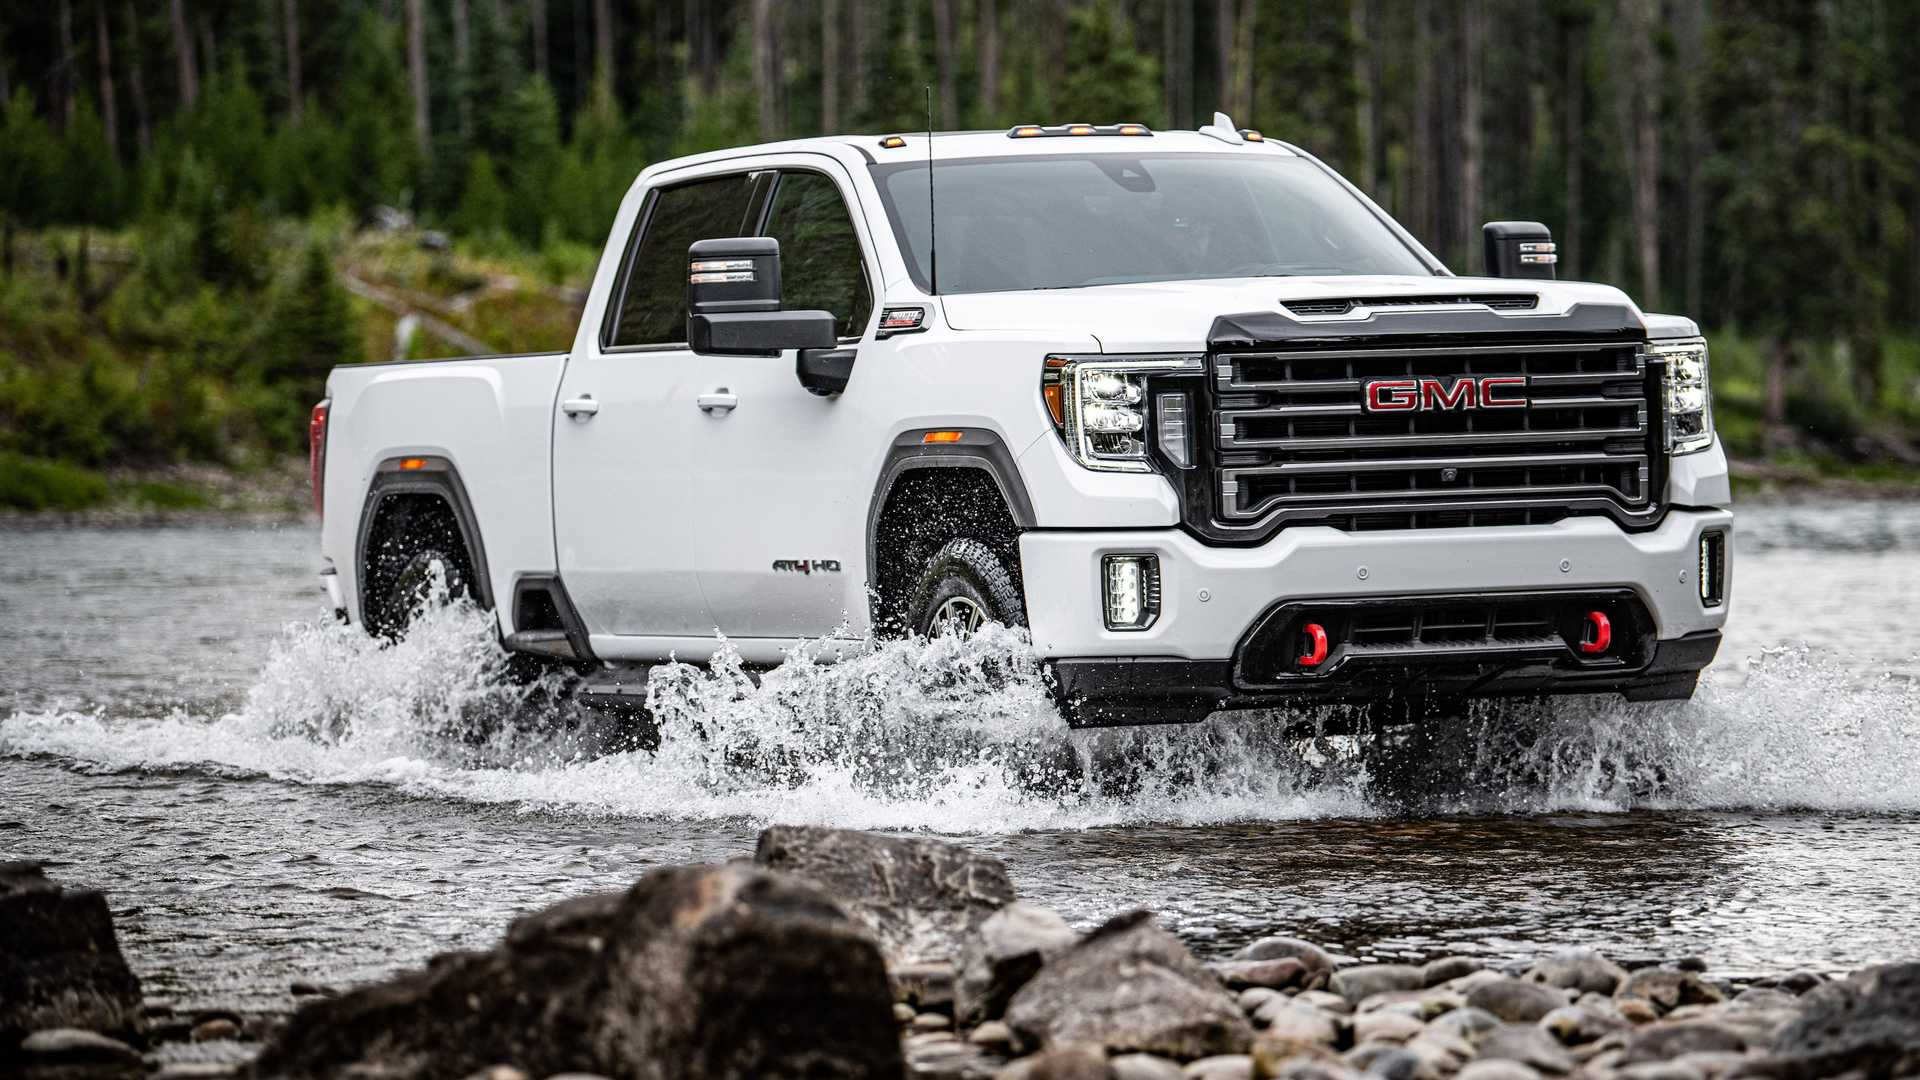 2020 GMC Sierra Hd Price, Design and Review